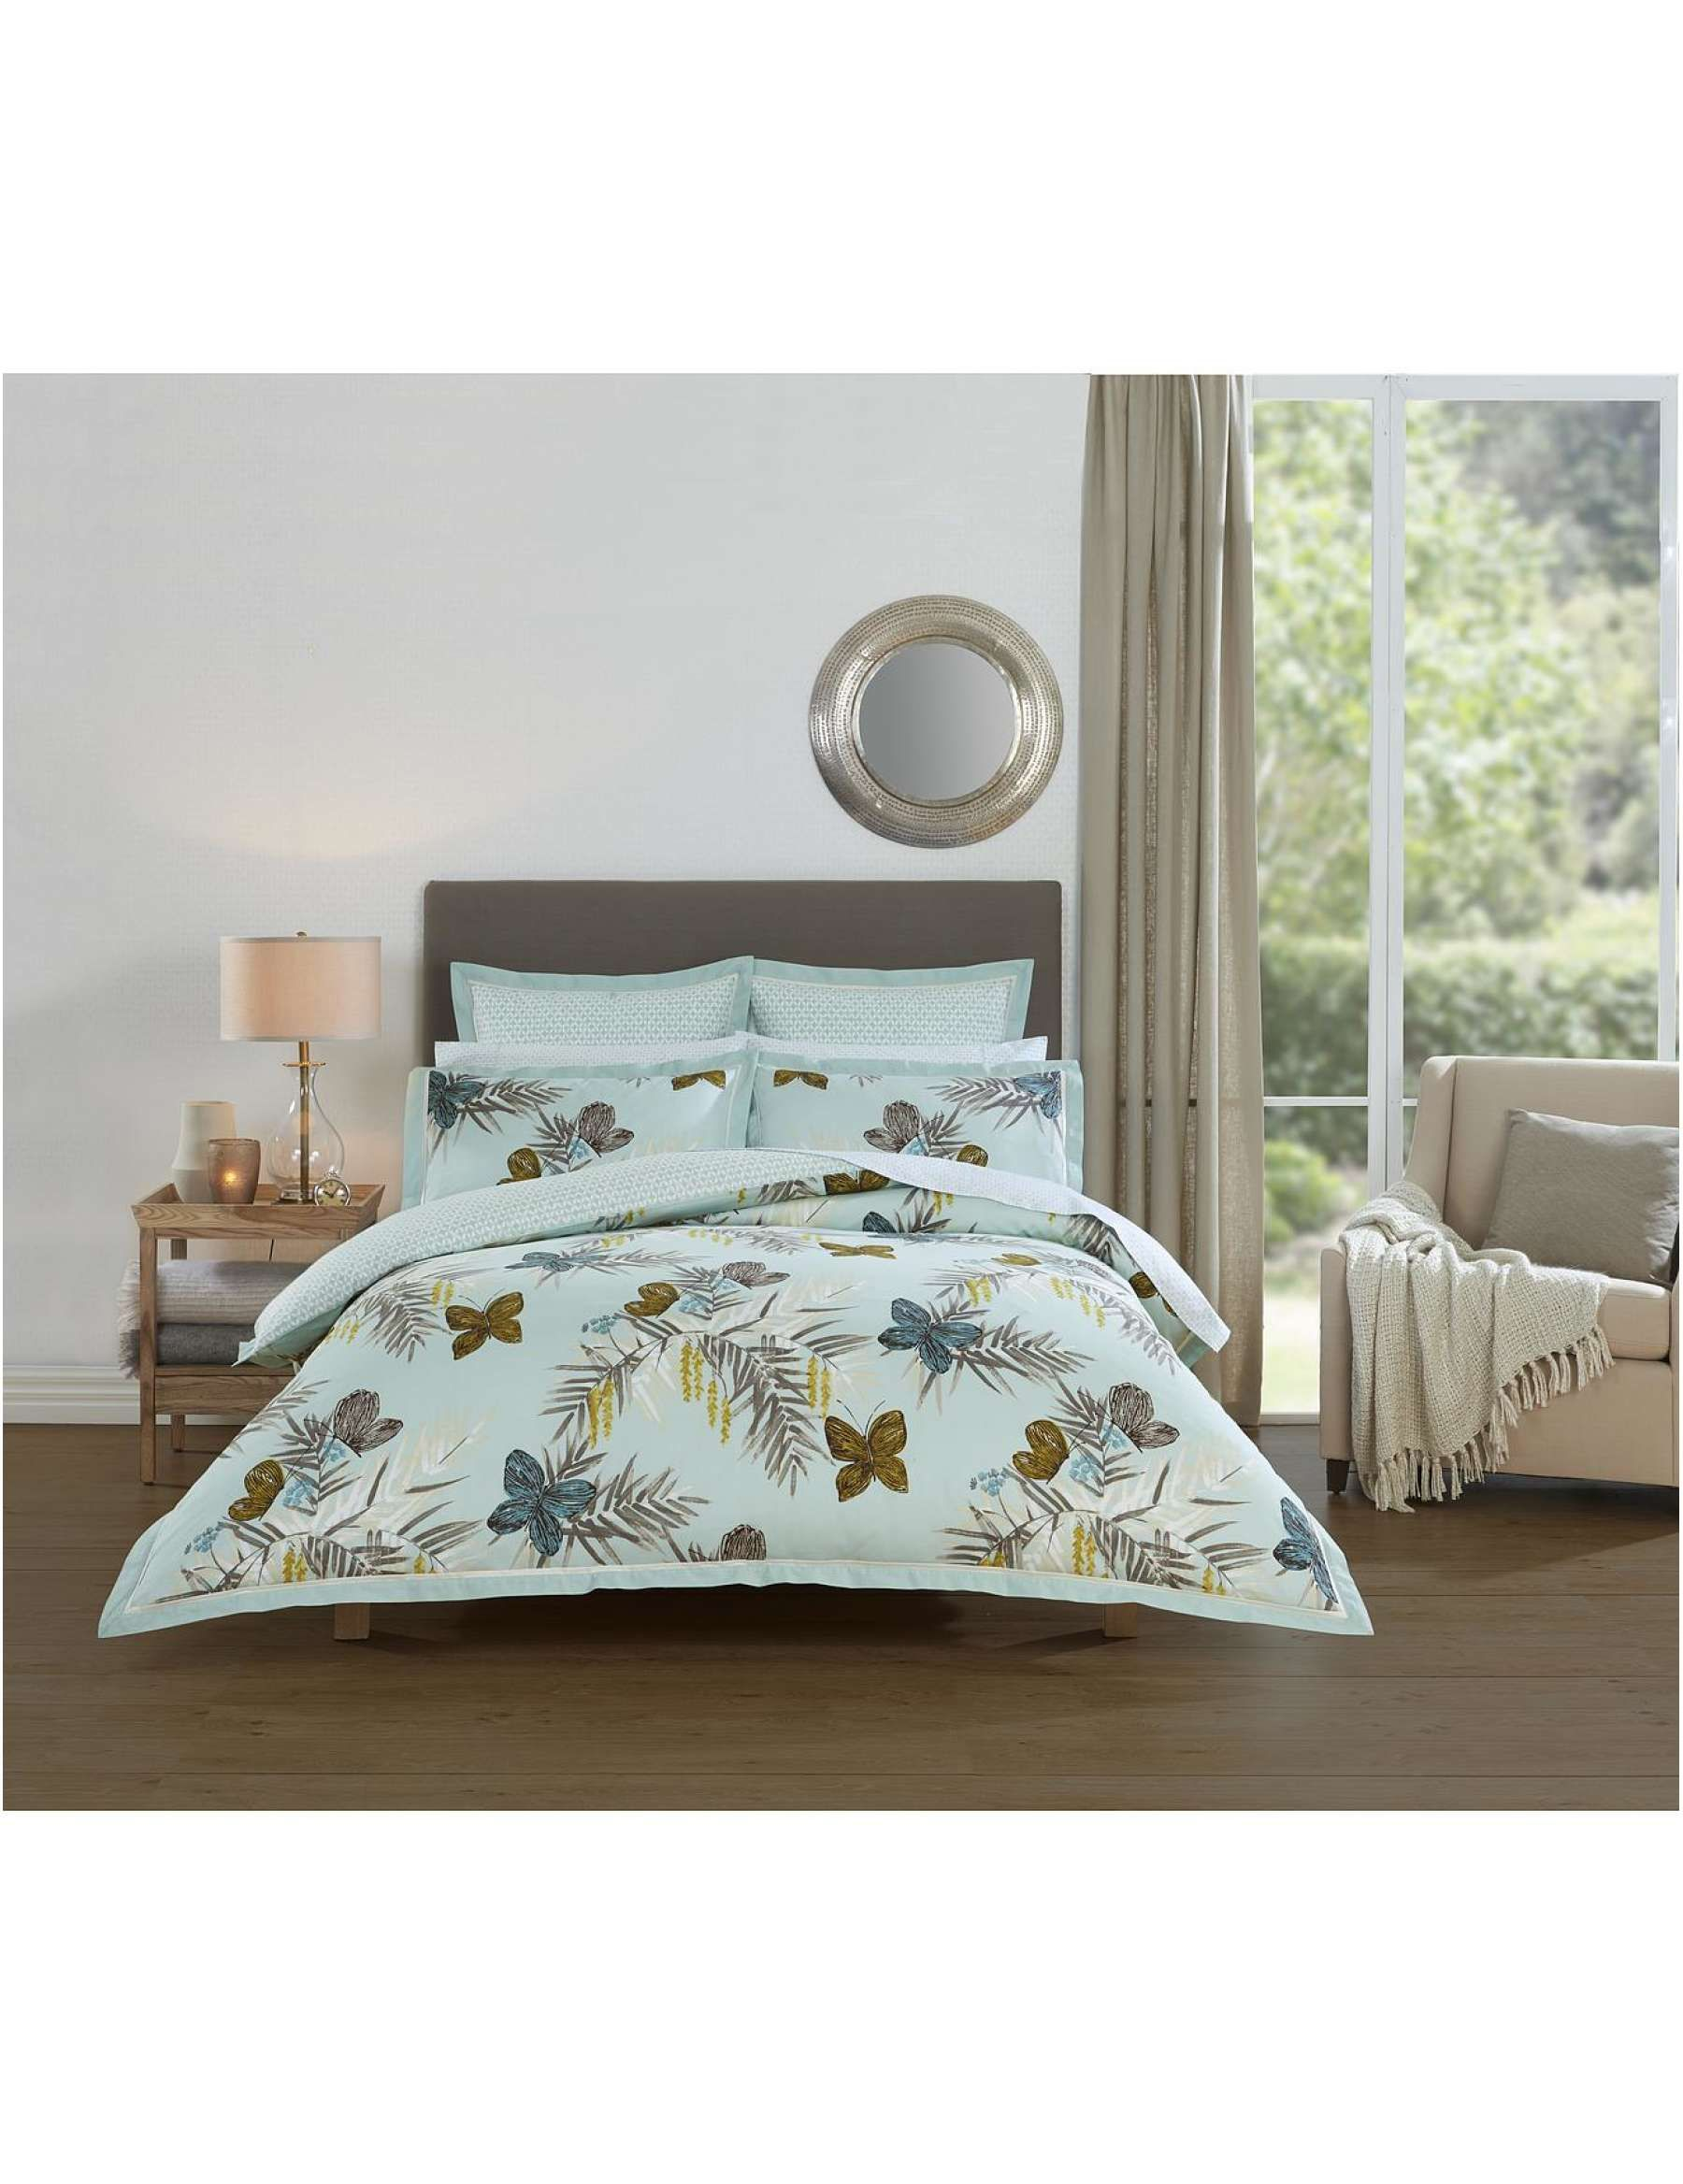 David Jones - Harlequin Floret Quilt Cover Double | Quilt covers ... : quilt cover sets david jones - Adamdwight.com